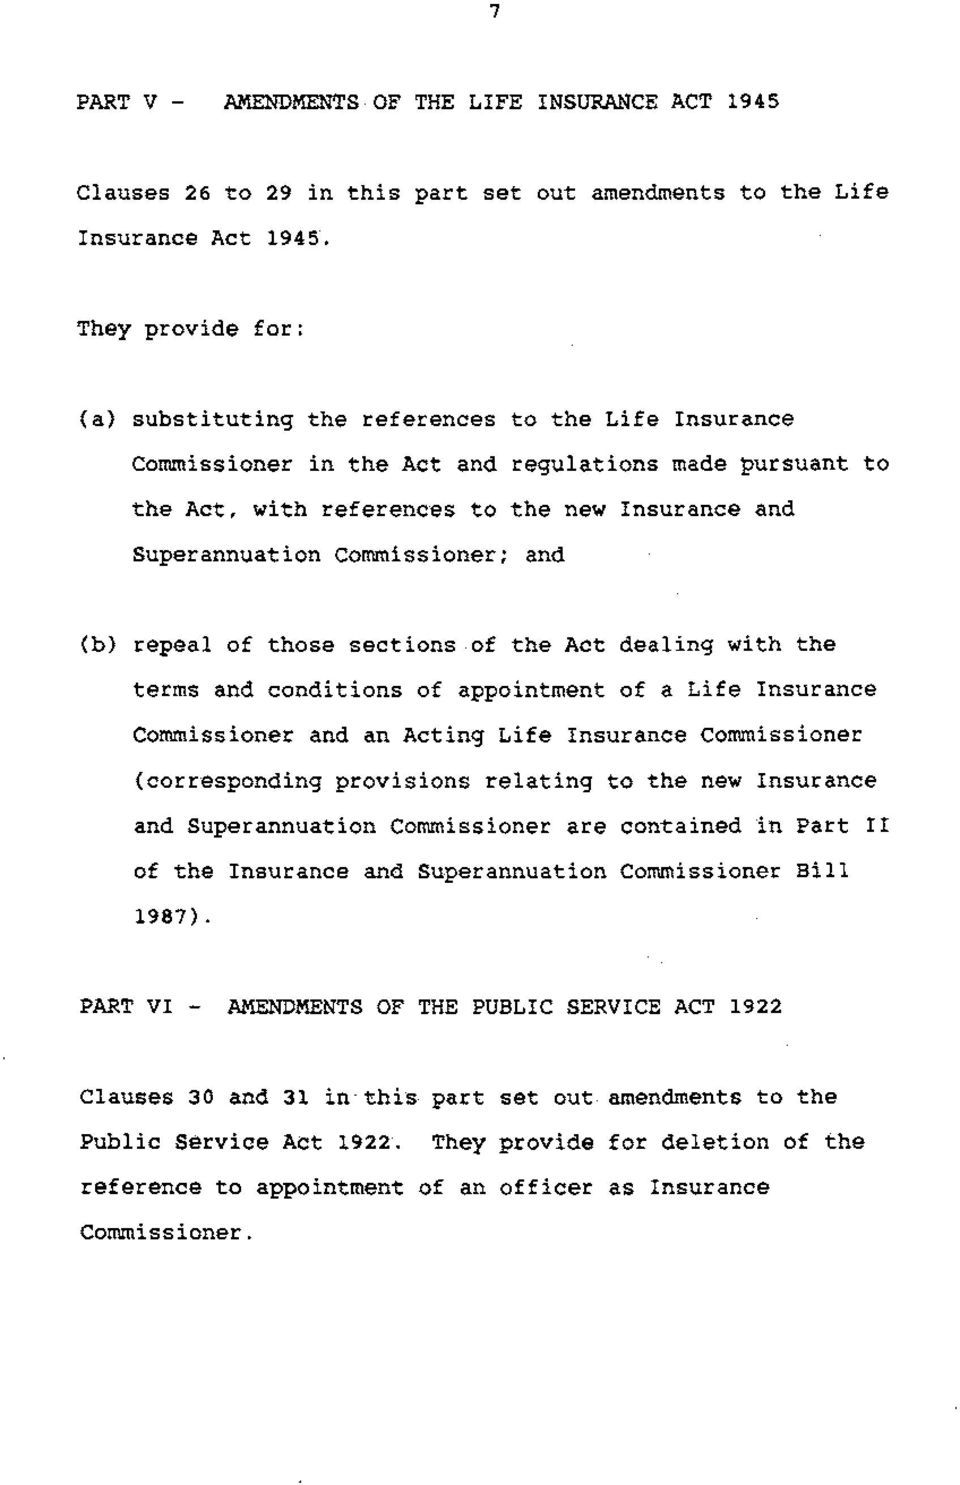 Commissioner; and (b) repeal of those sections of the Act dealing with the terms and conditions of appointment of a Life Insurance Commissioner and an Acting Life Insurance Commissioner